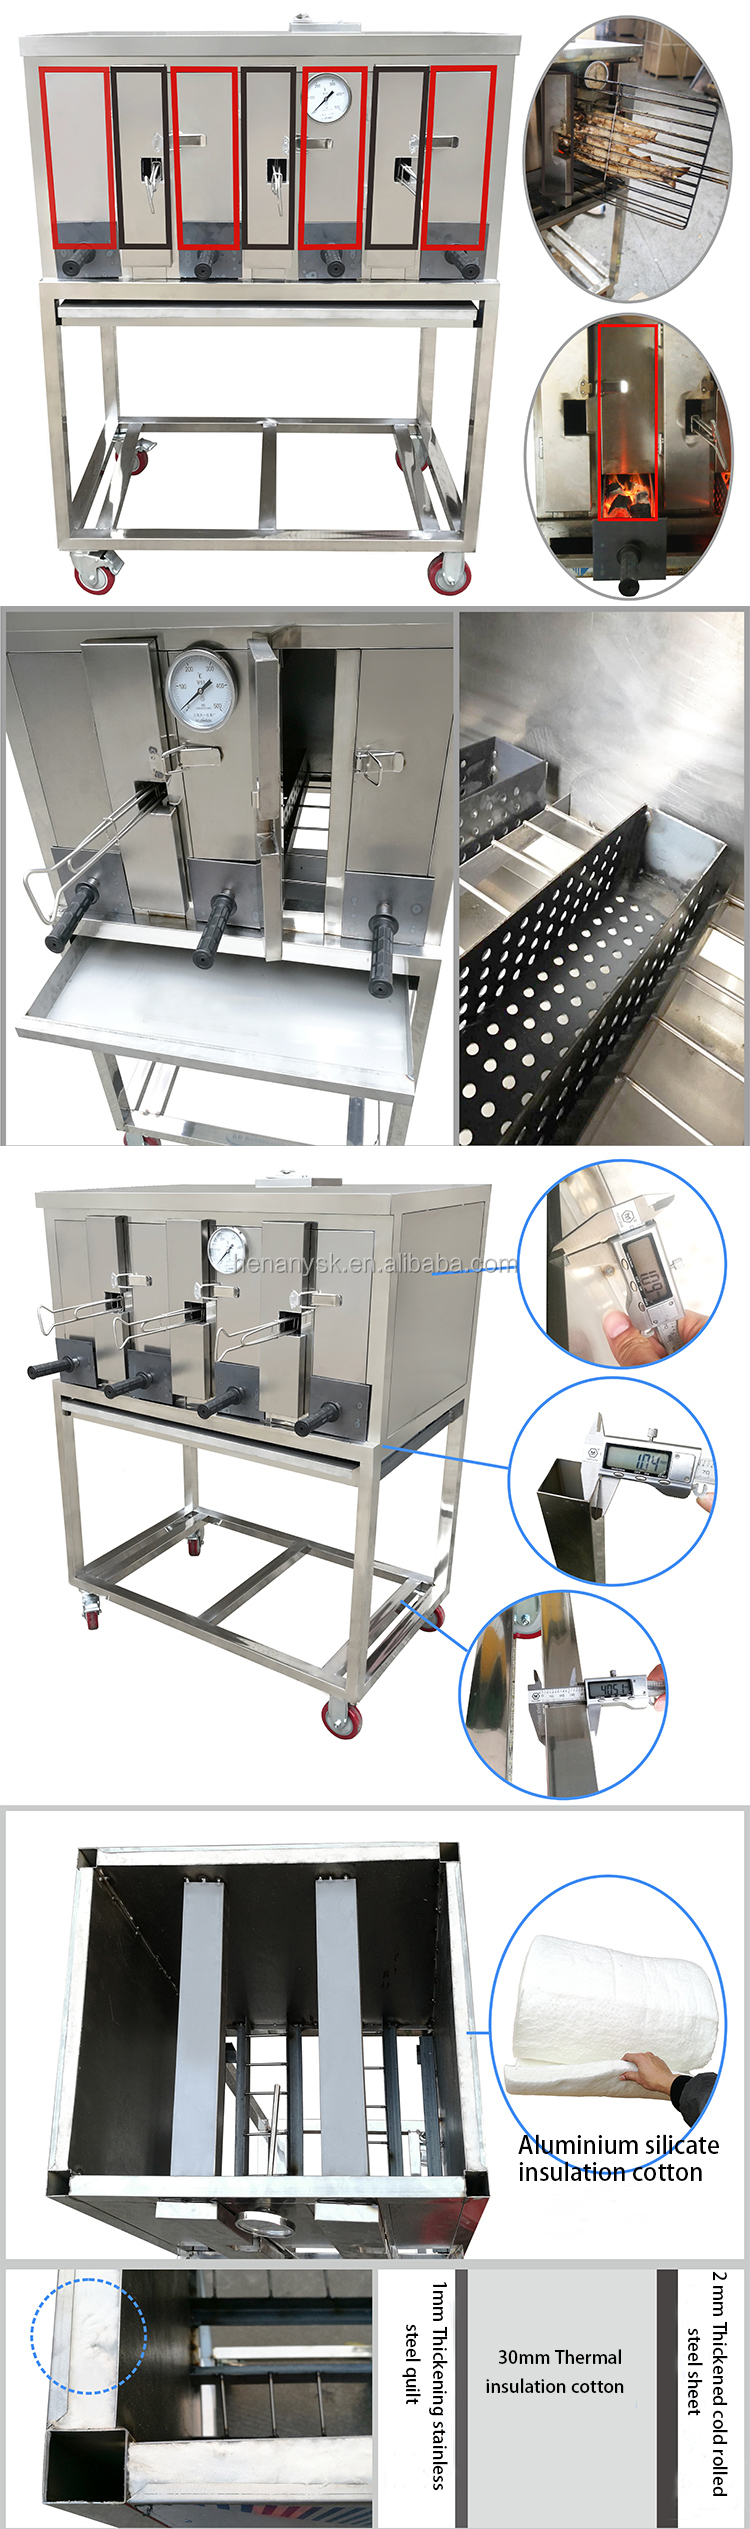 Stainless Steel Commercial Smokeless Charcoal 3 Fish 4 Boxes Fish Grill Furnace Machine